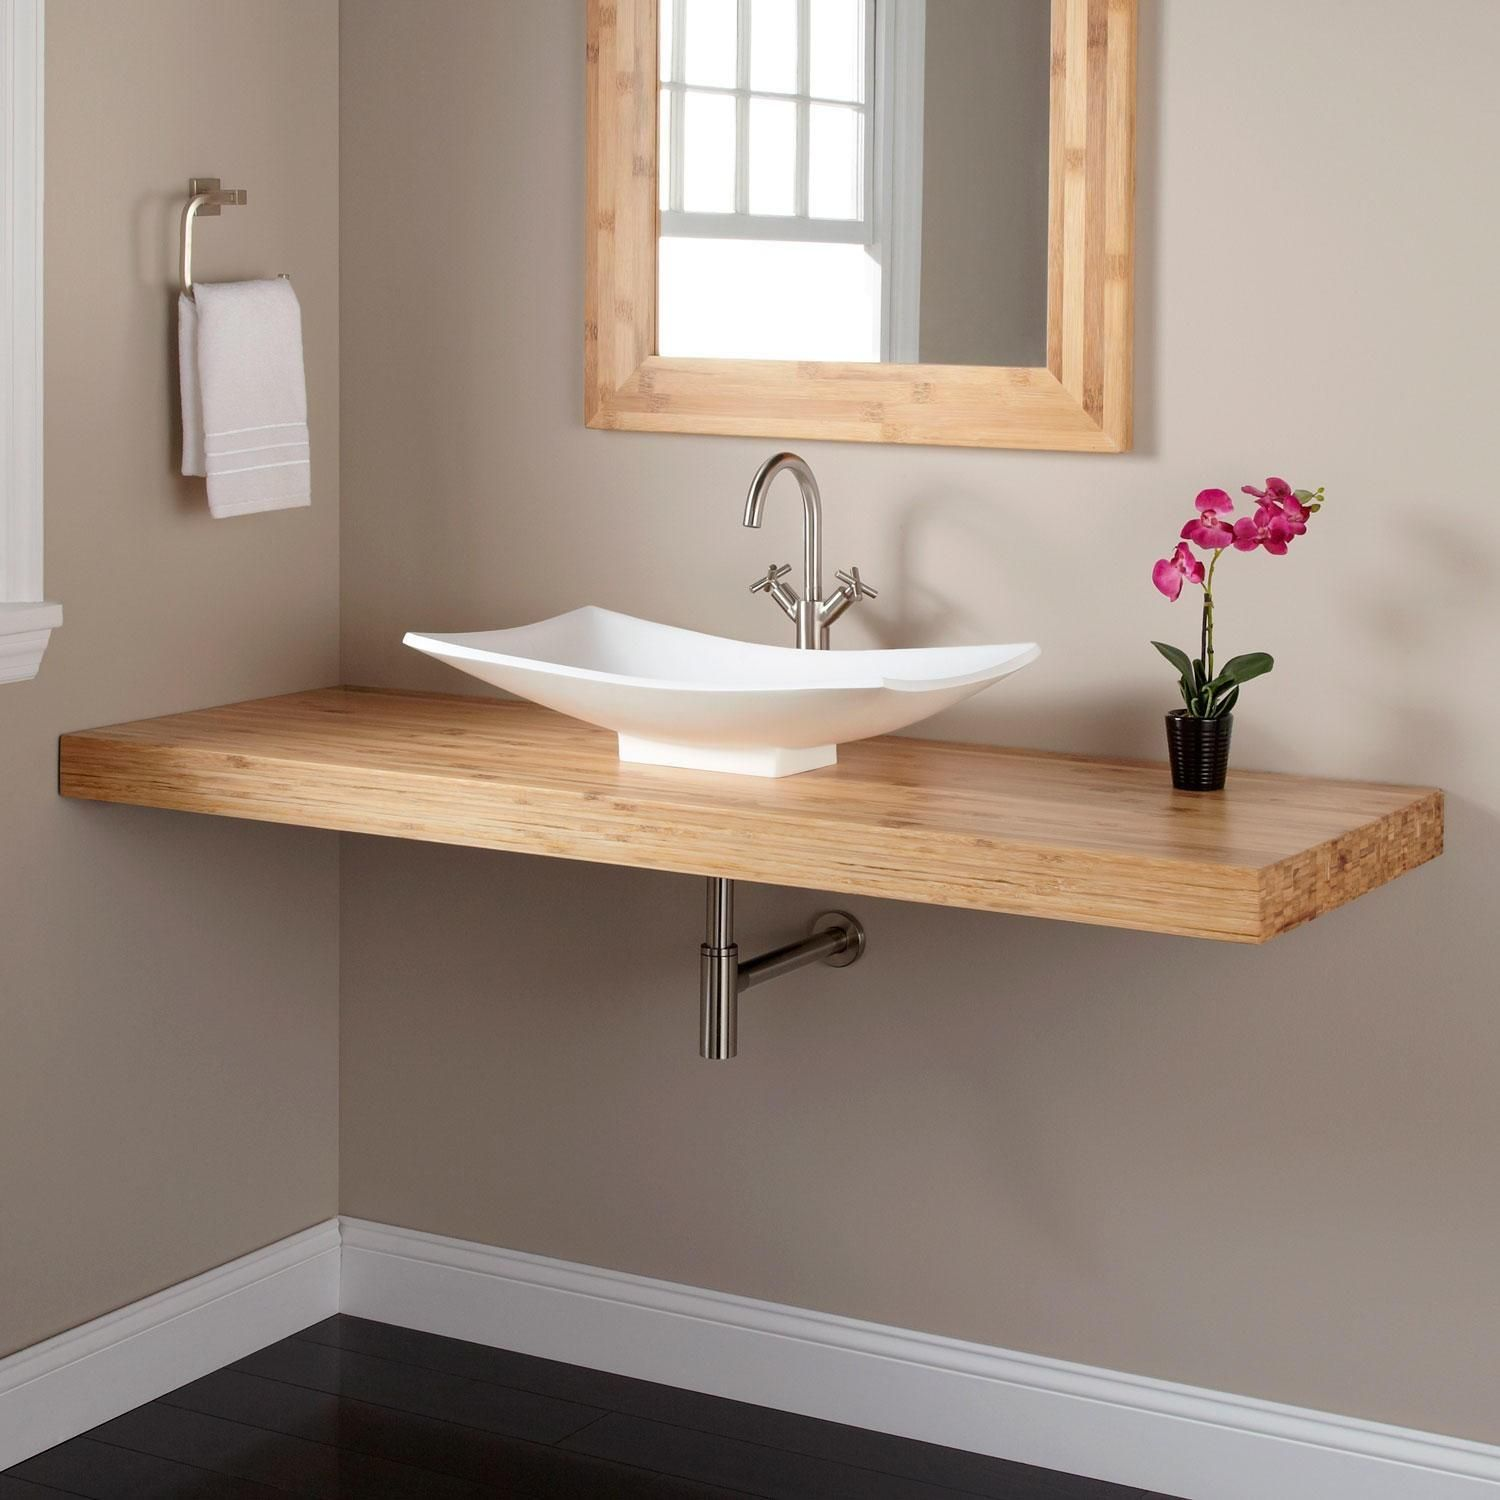 Bathroom Sinks Audrie Wall Mount Sink Wall Mount Bathroom Vanity